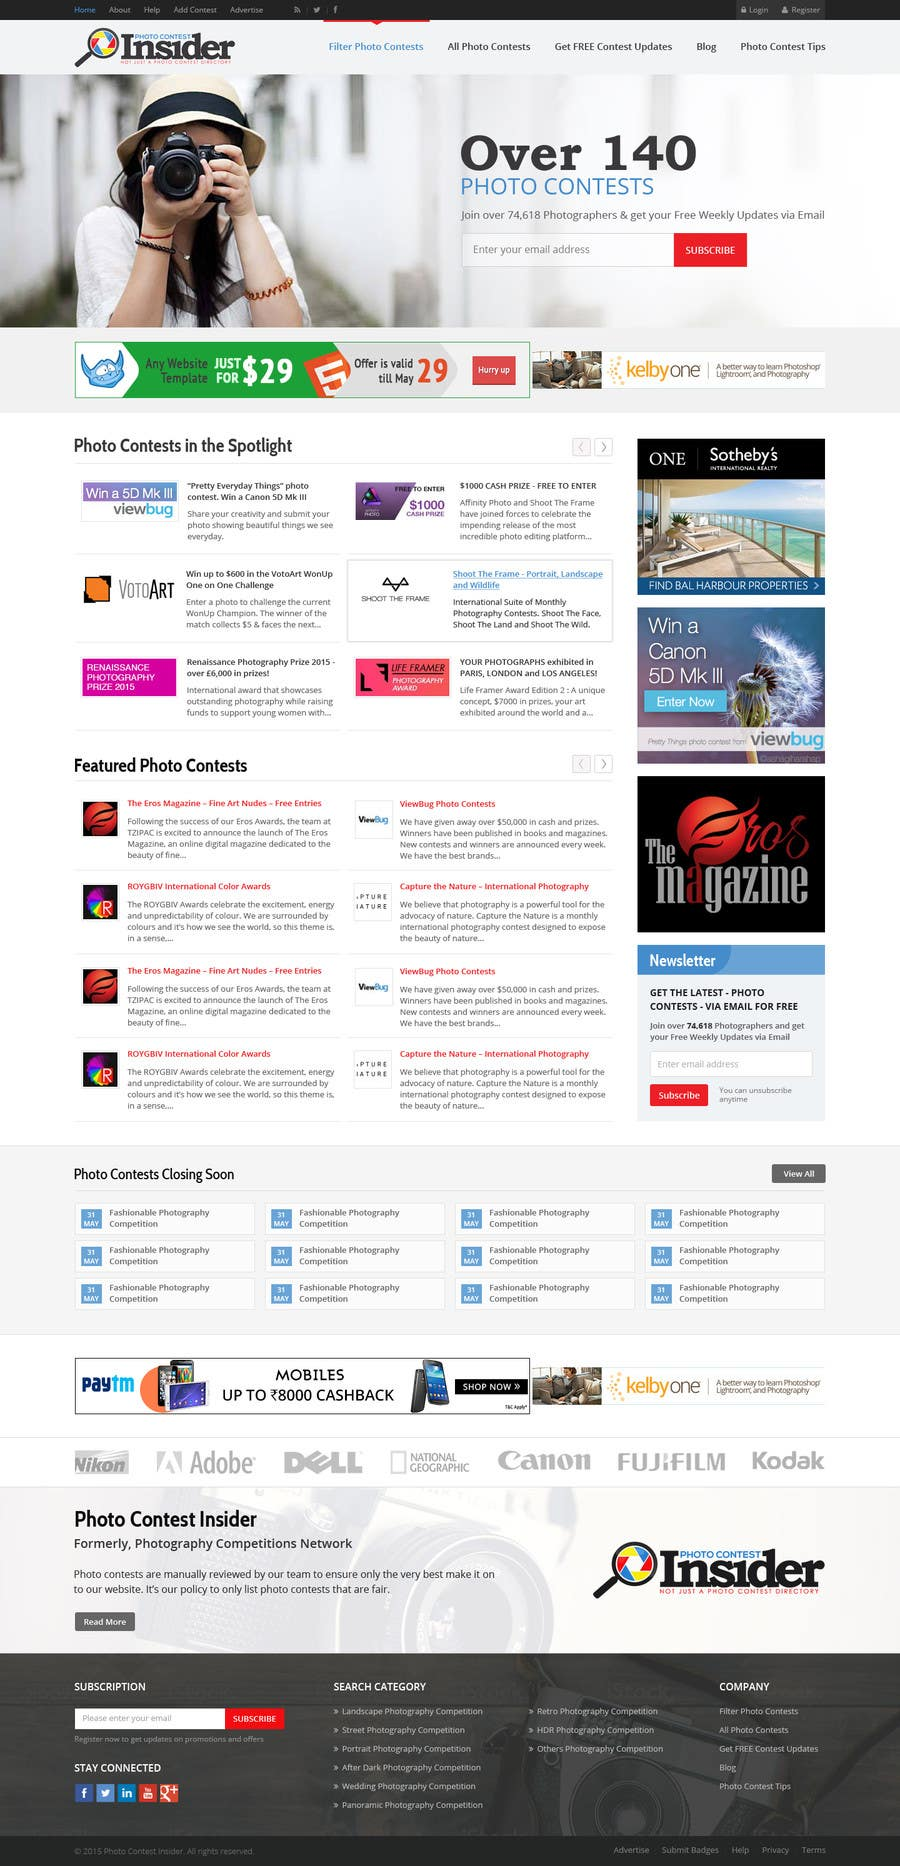 Penyertaan Peraduan #49 untuk Design a Homepage mockup for our existing website WITHOUT changing the layout [PSD ONLY]